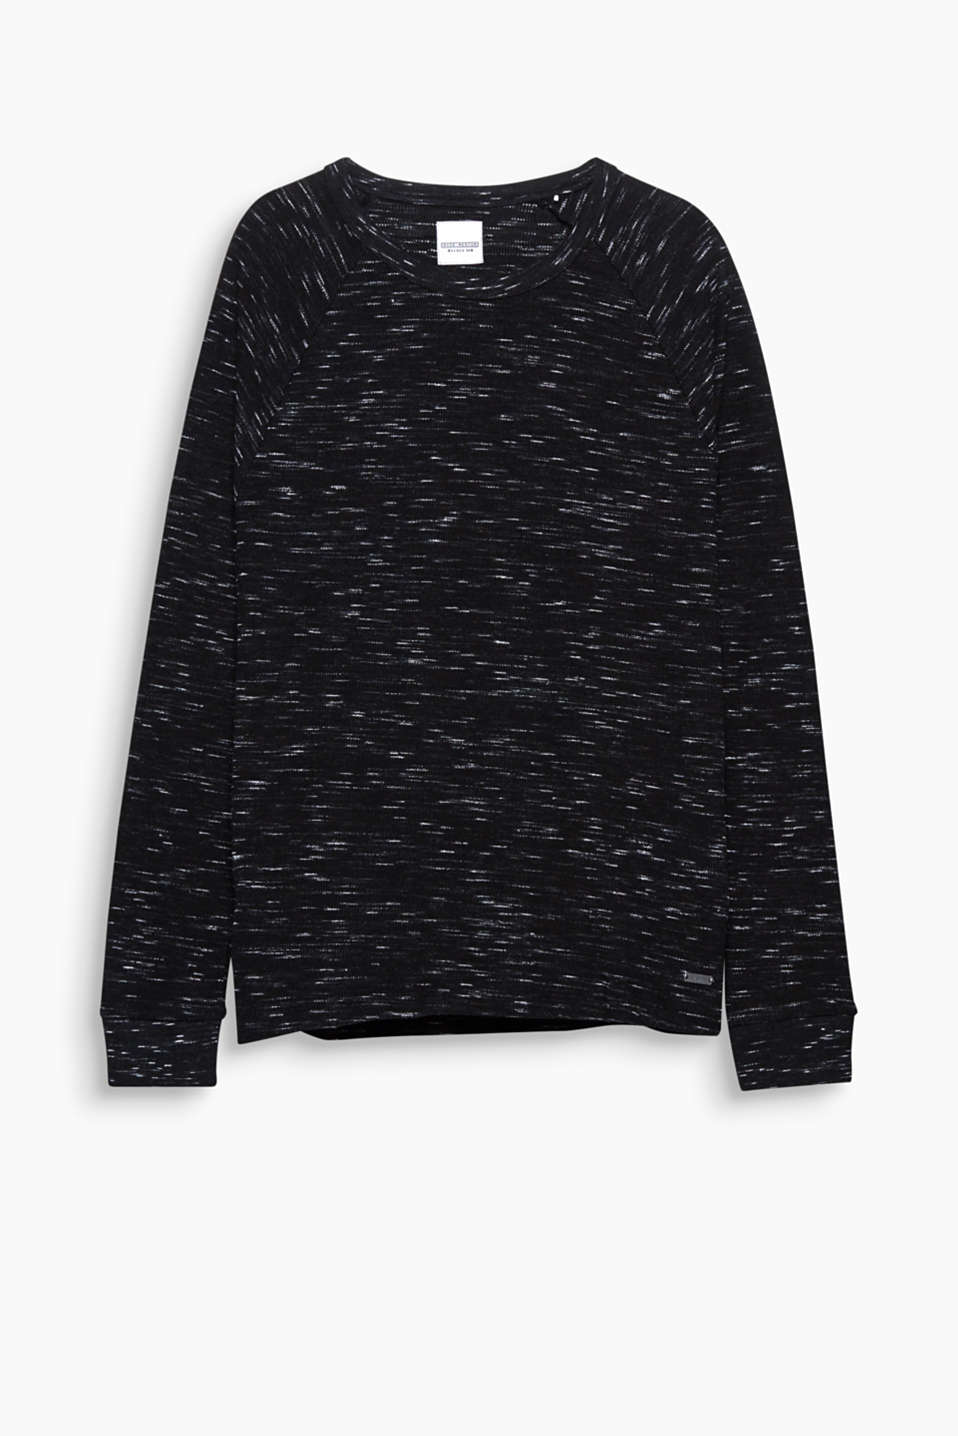 An urban basic! The slub effect and waffle texture make this long sleeve top with raglan sleeves a favourite